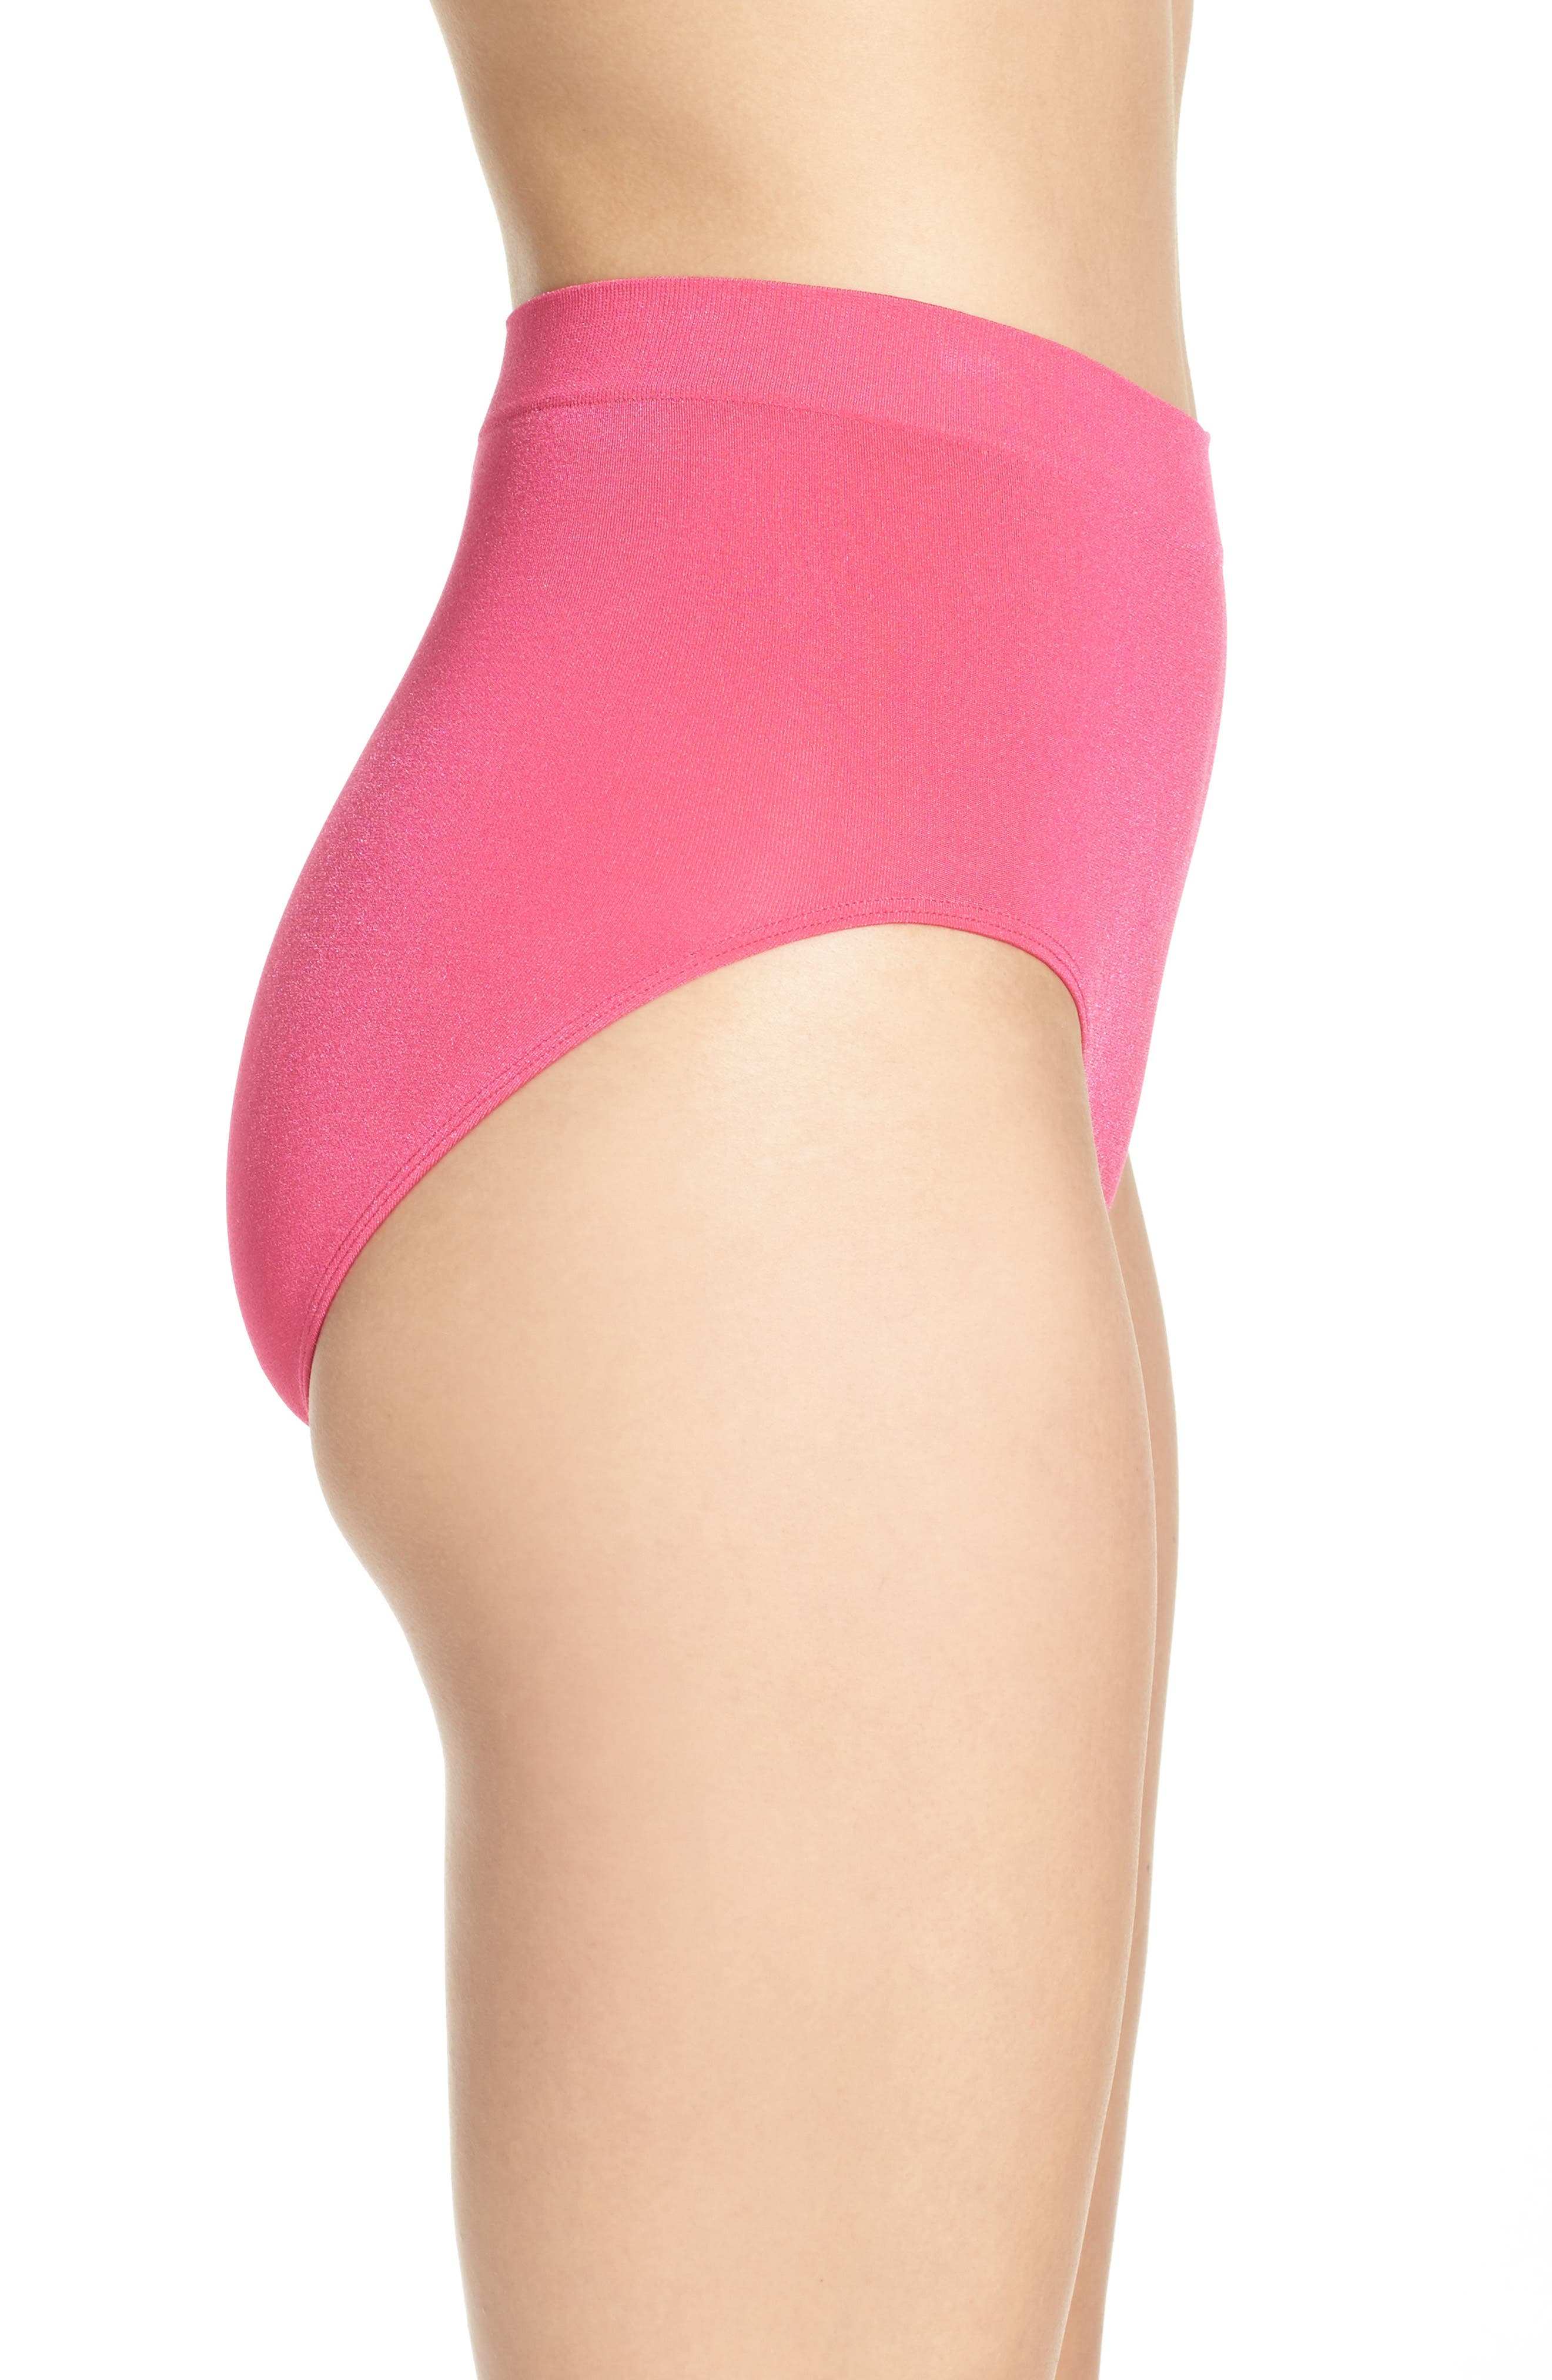 B Smooth Briefs,                             Alternate thumbnail 179, color,